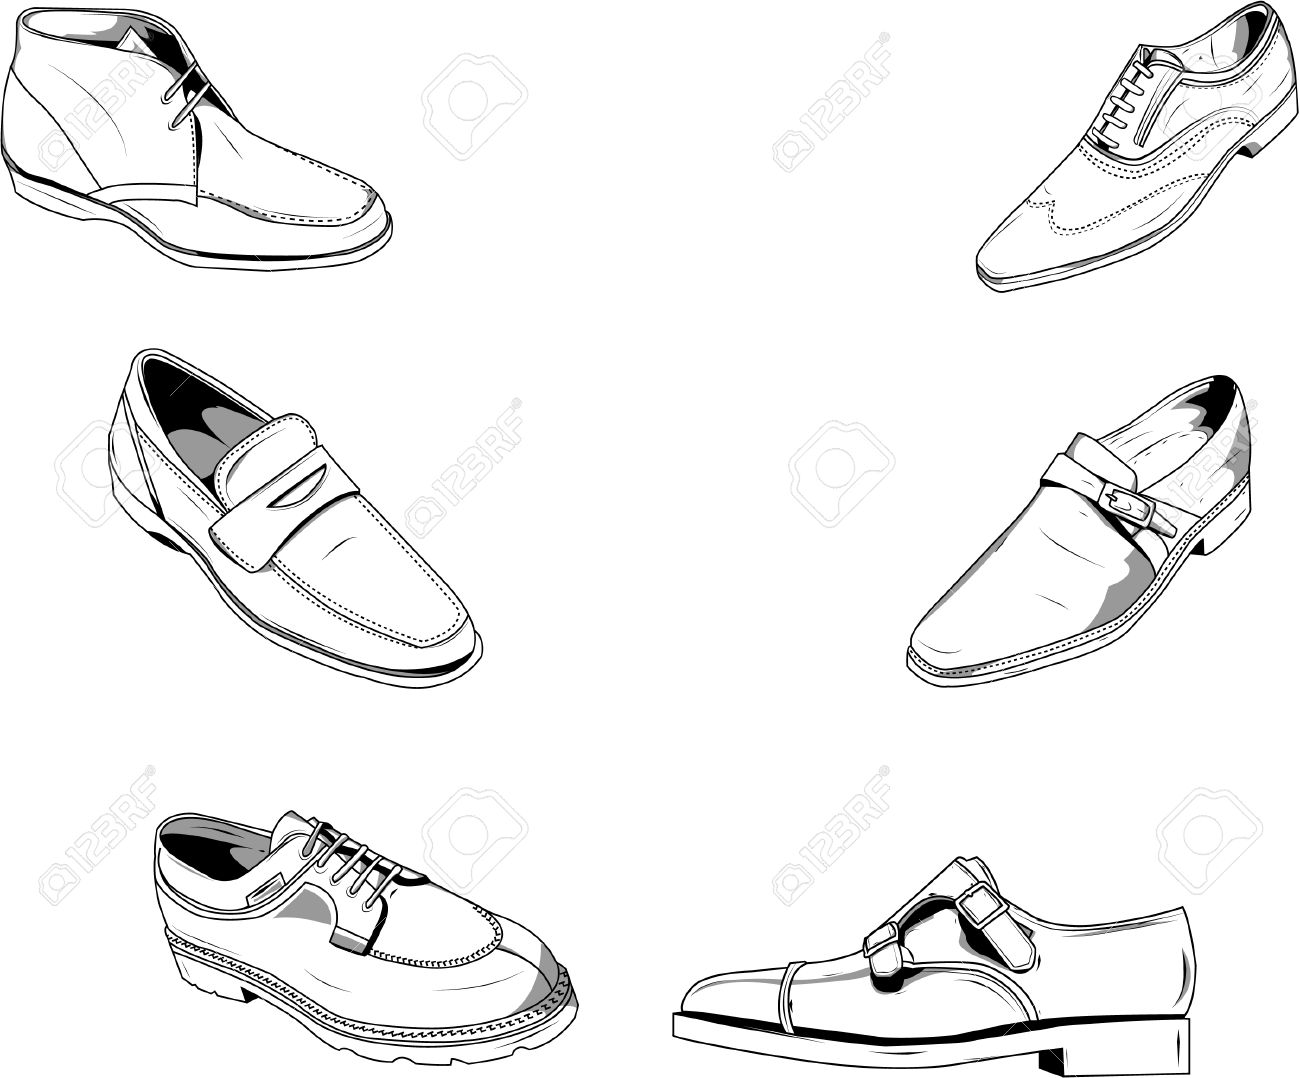 Vector illustration of classic men shoes, good for fashion and other type of designs. Vectors are on separate layers and color can be easily modified. Stock Vector - 4929019